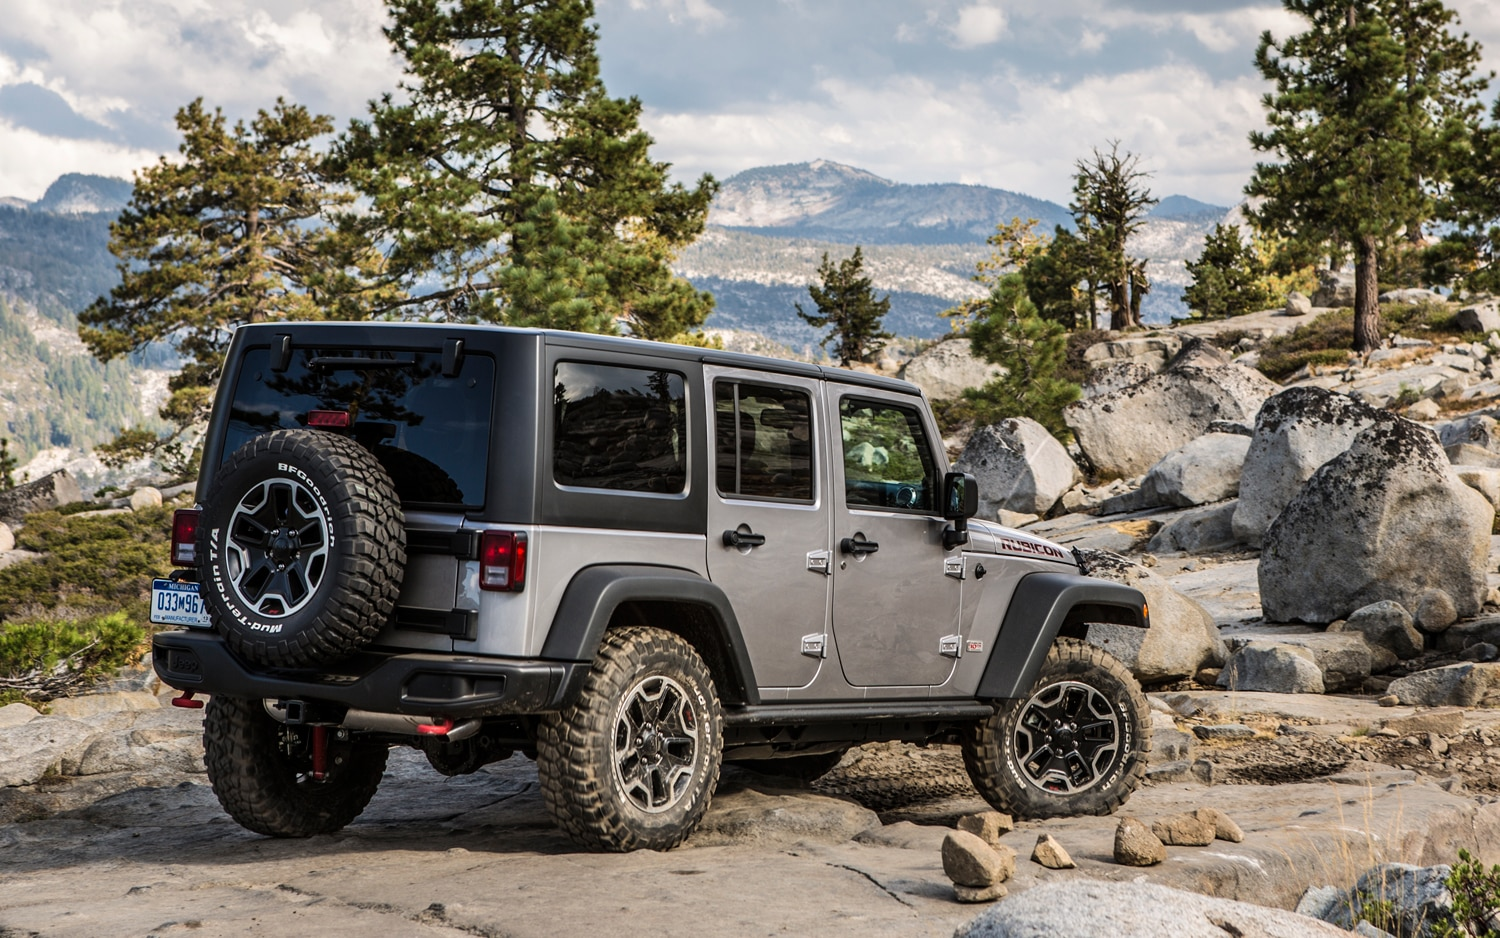 2013 Jeep Wrangler Rubicon Unlimited Rear